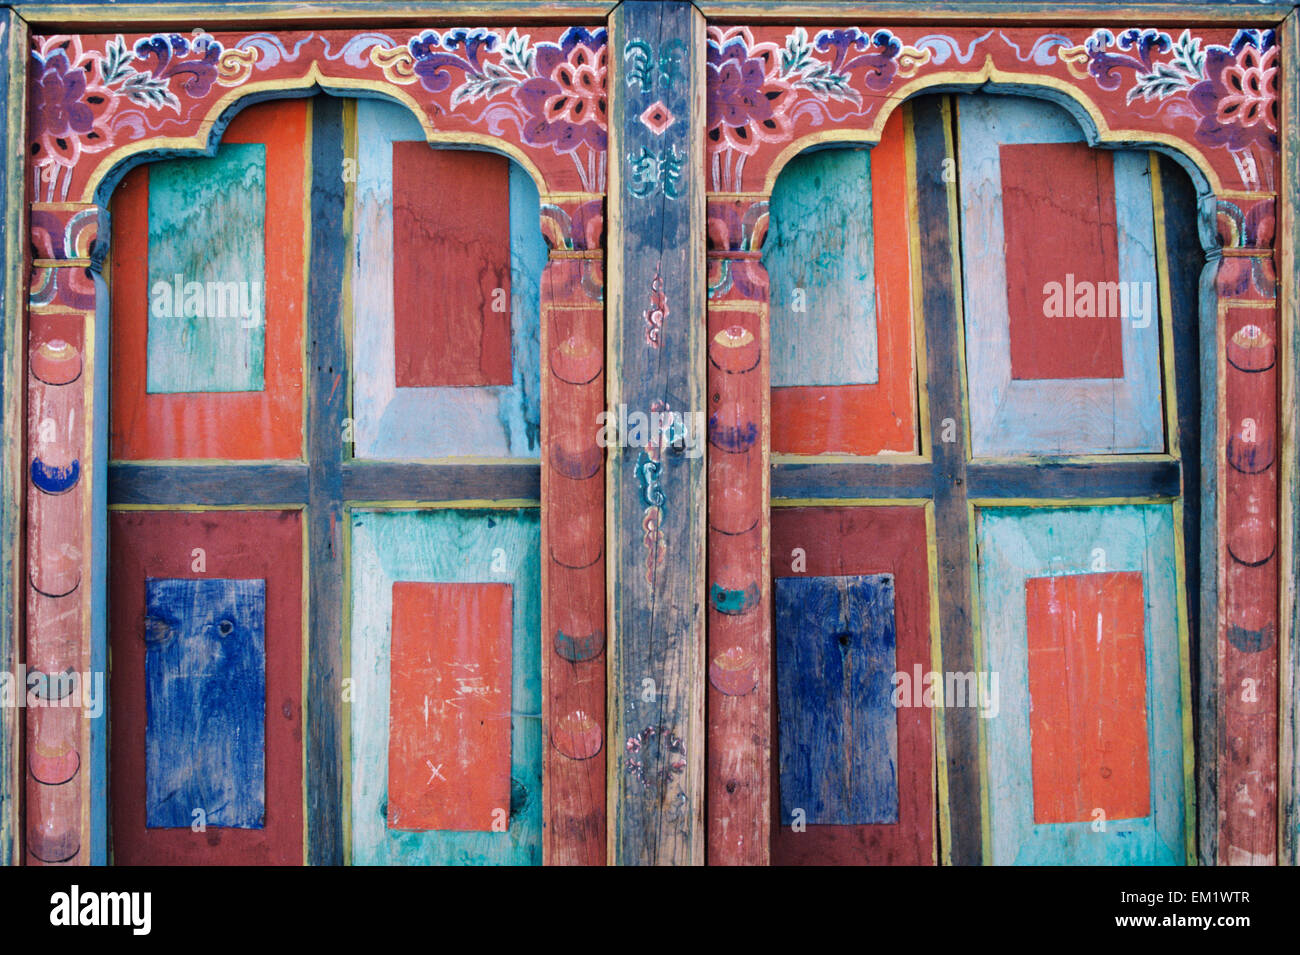 Bhutan, Paro, Detail of wall art and architecture; Ta Dzong Museum - Stock Image